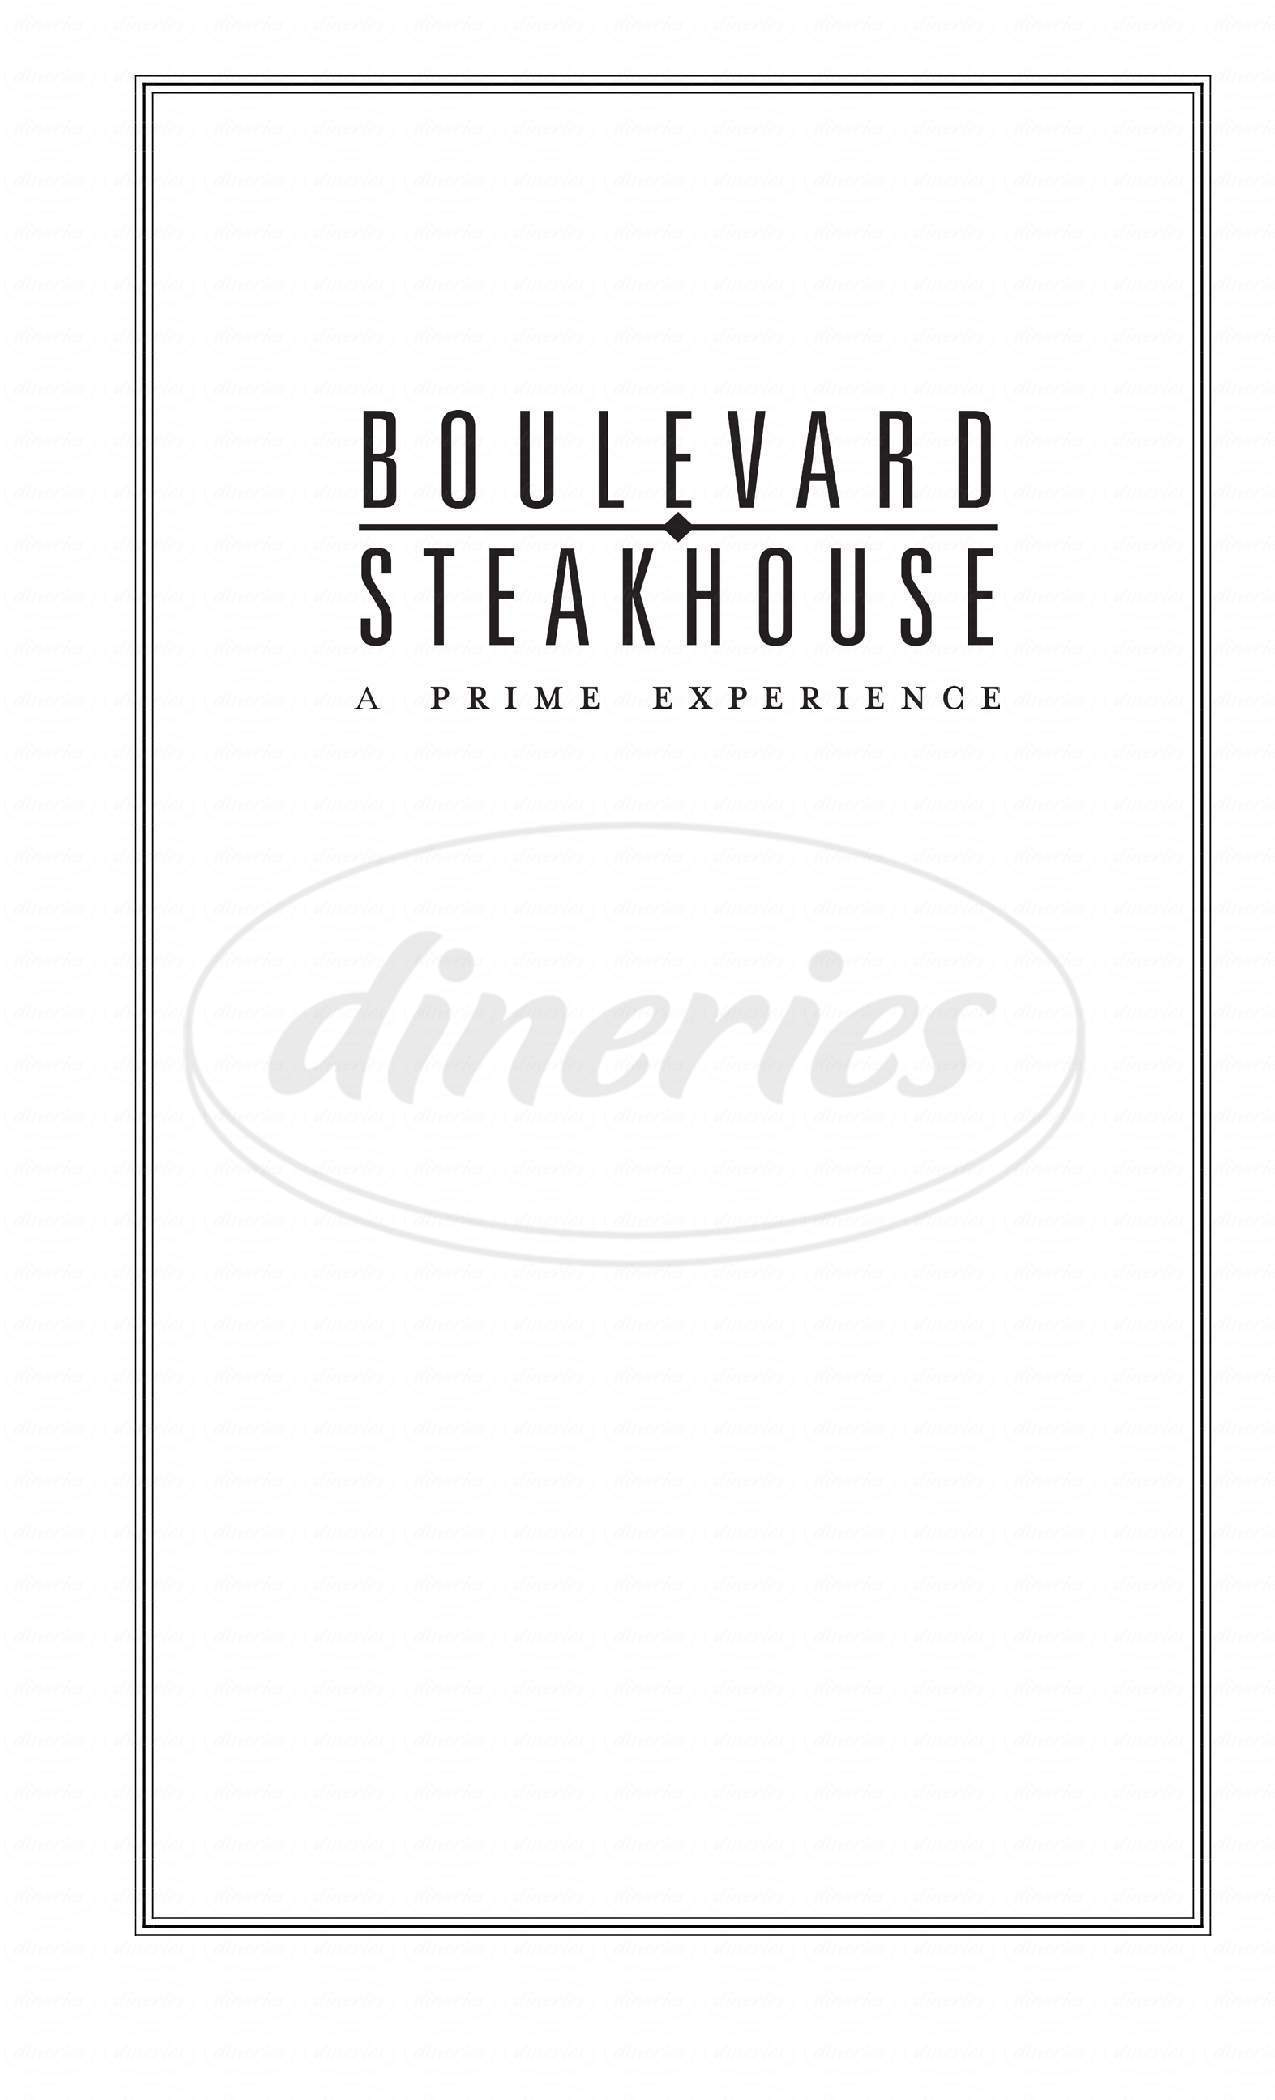 menu for Boulevard Steakhouse